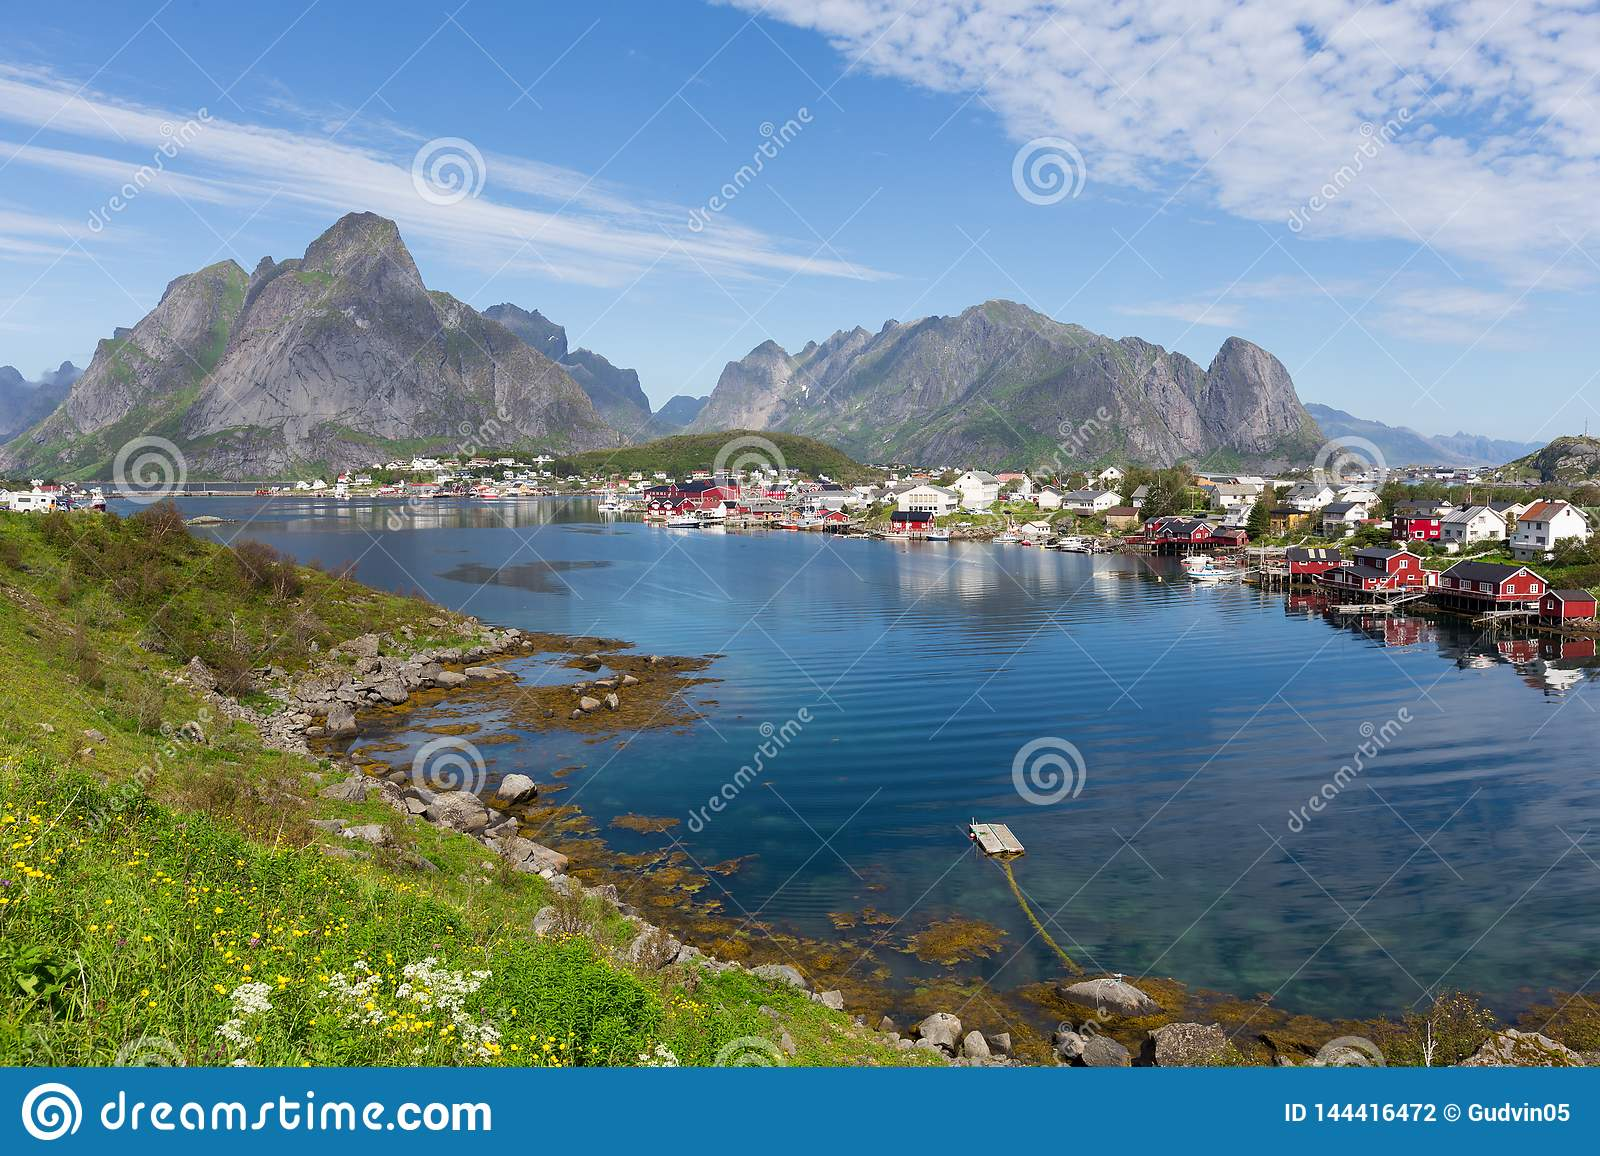 Lofoten Summer Landscape Lofoten is an archipelago in the county of Nordland, Norway. Is known for a distinctive scenery with